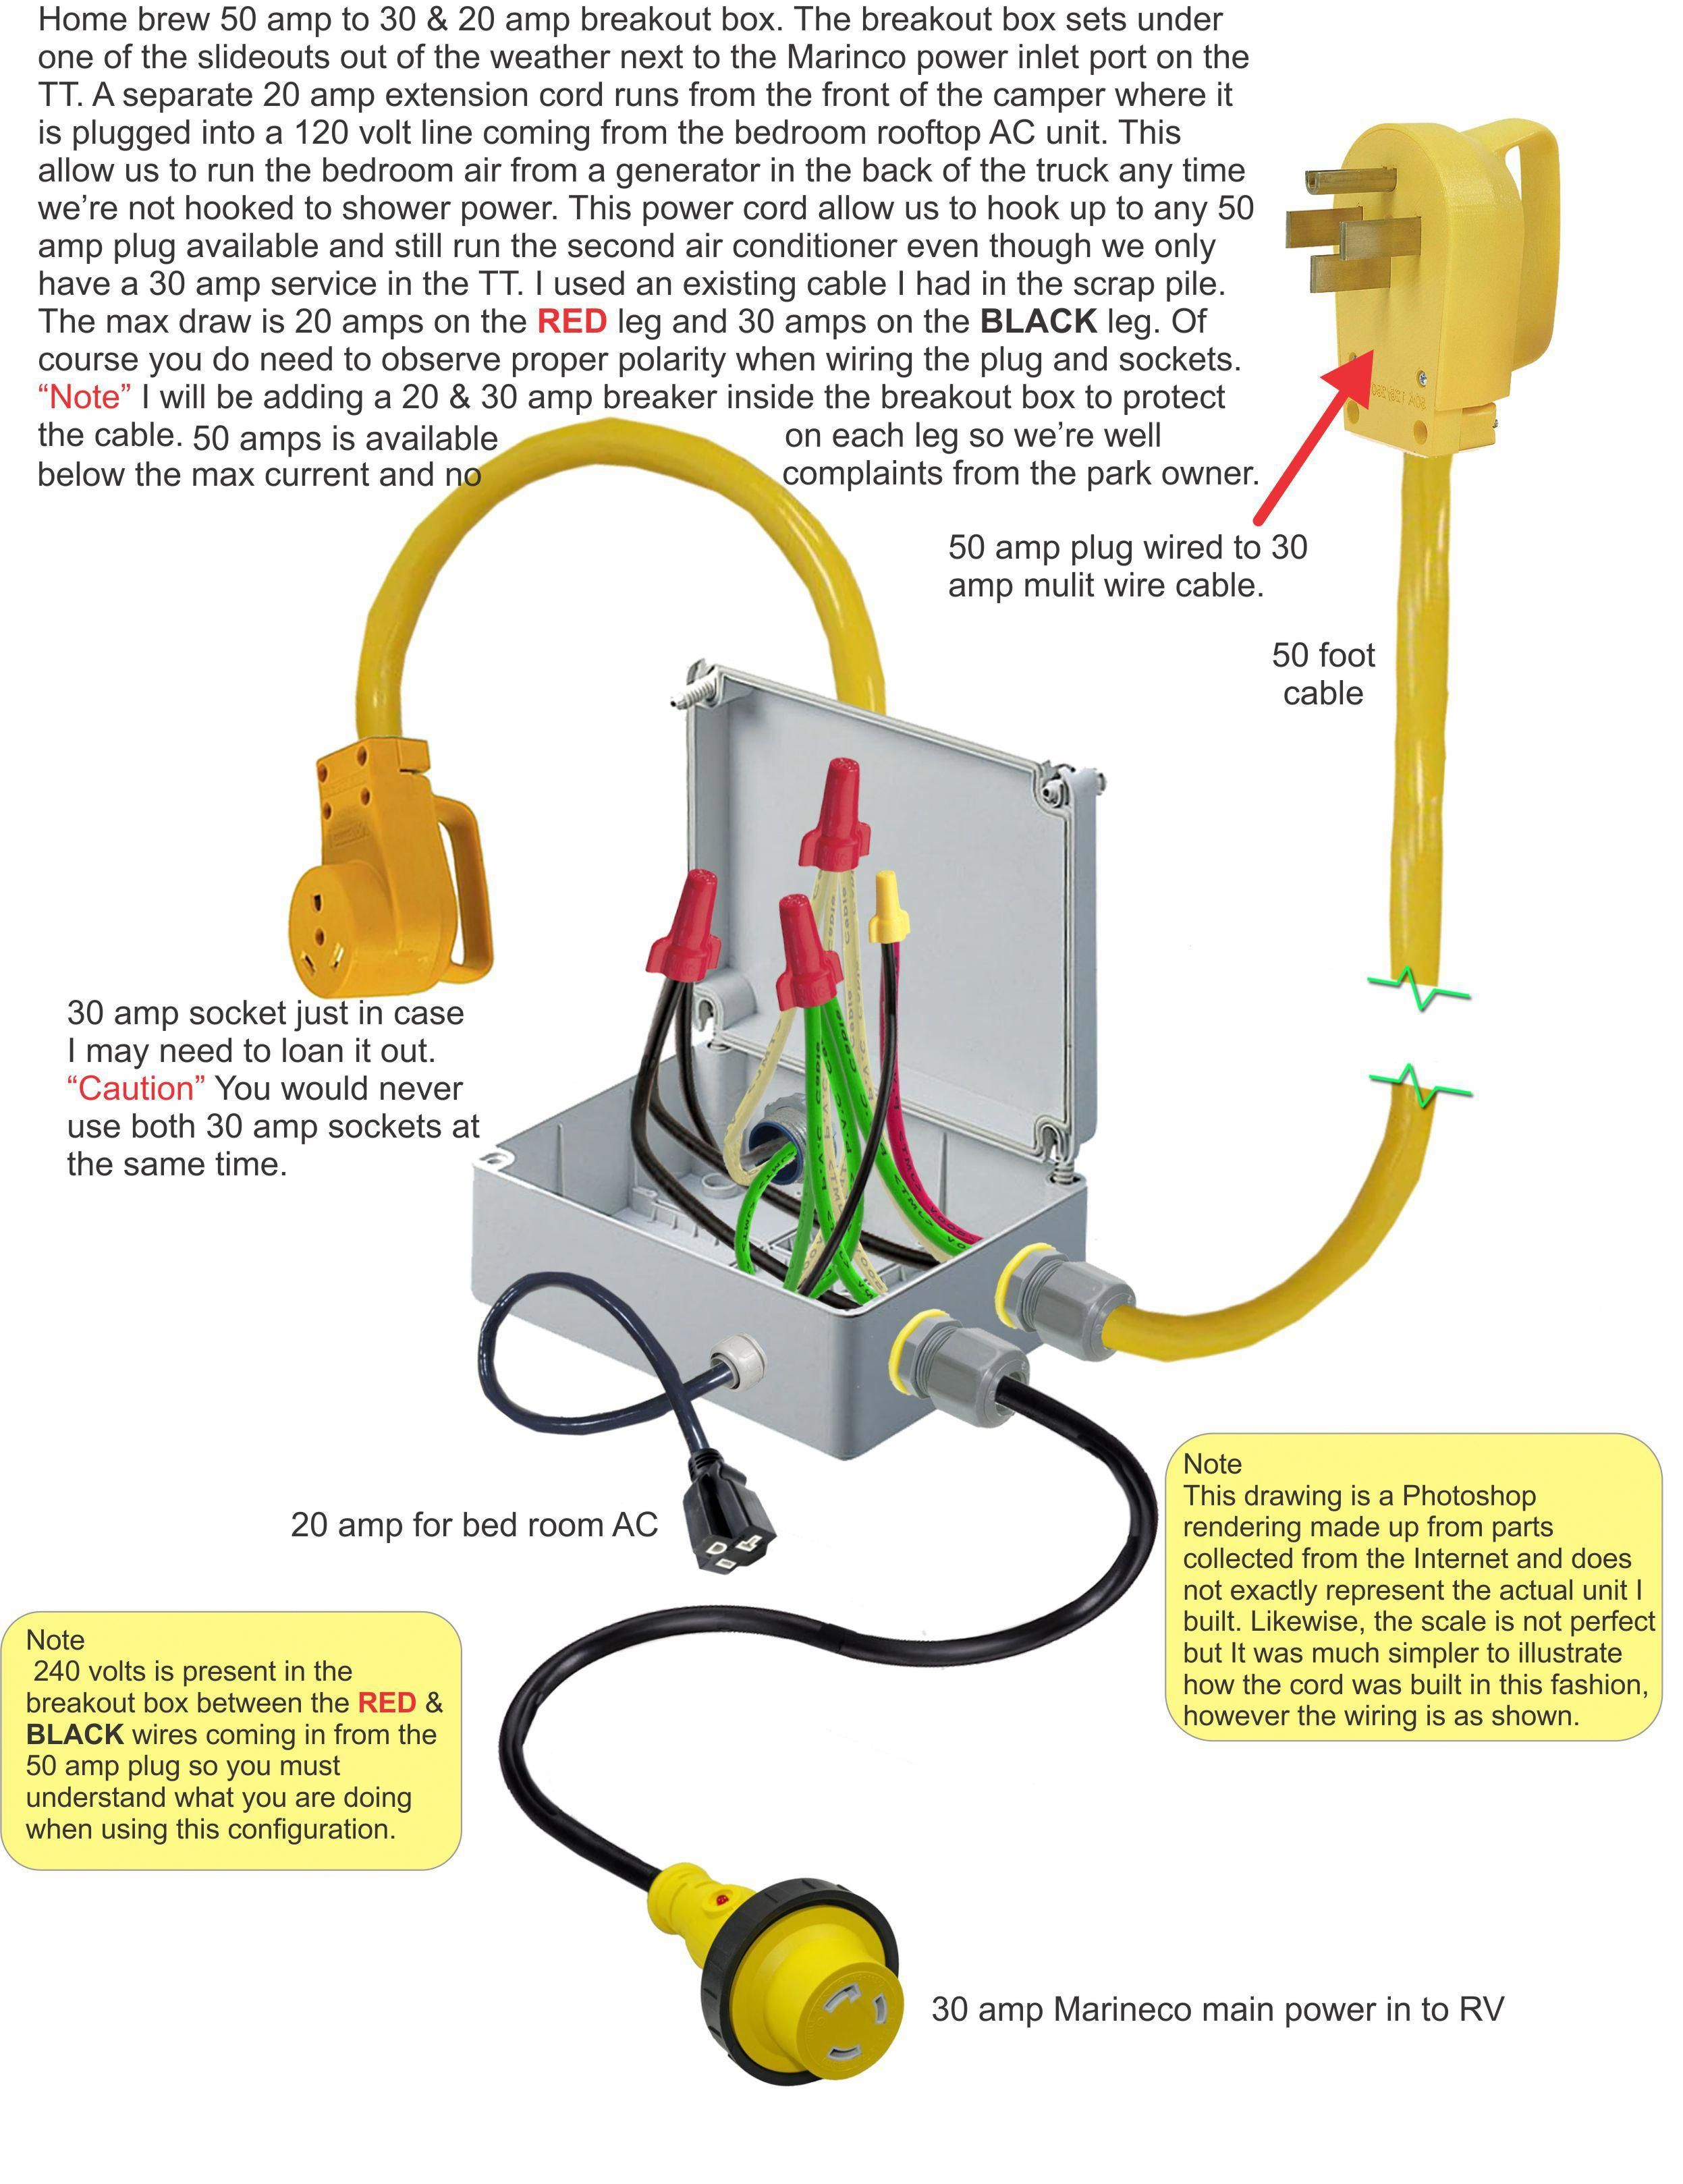 50 amp rv plug wiring diagram more details can be found by clicking on the image campingideas [ 2494 x 3237 Pixel ]